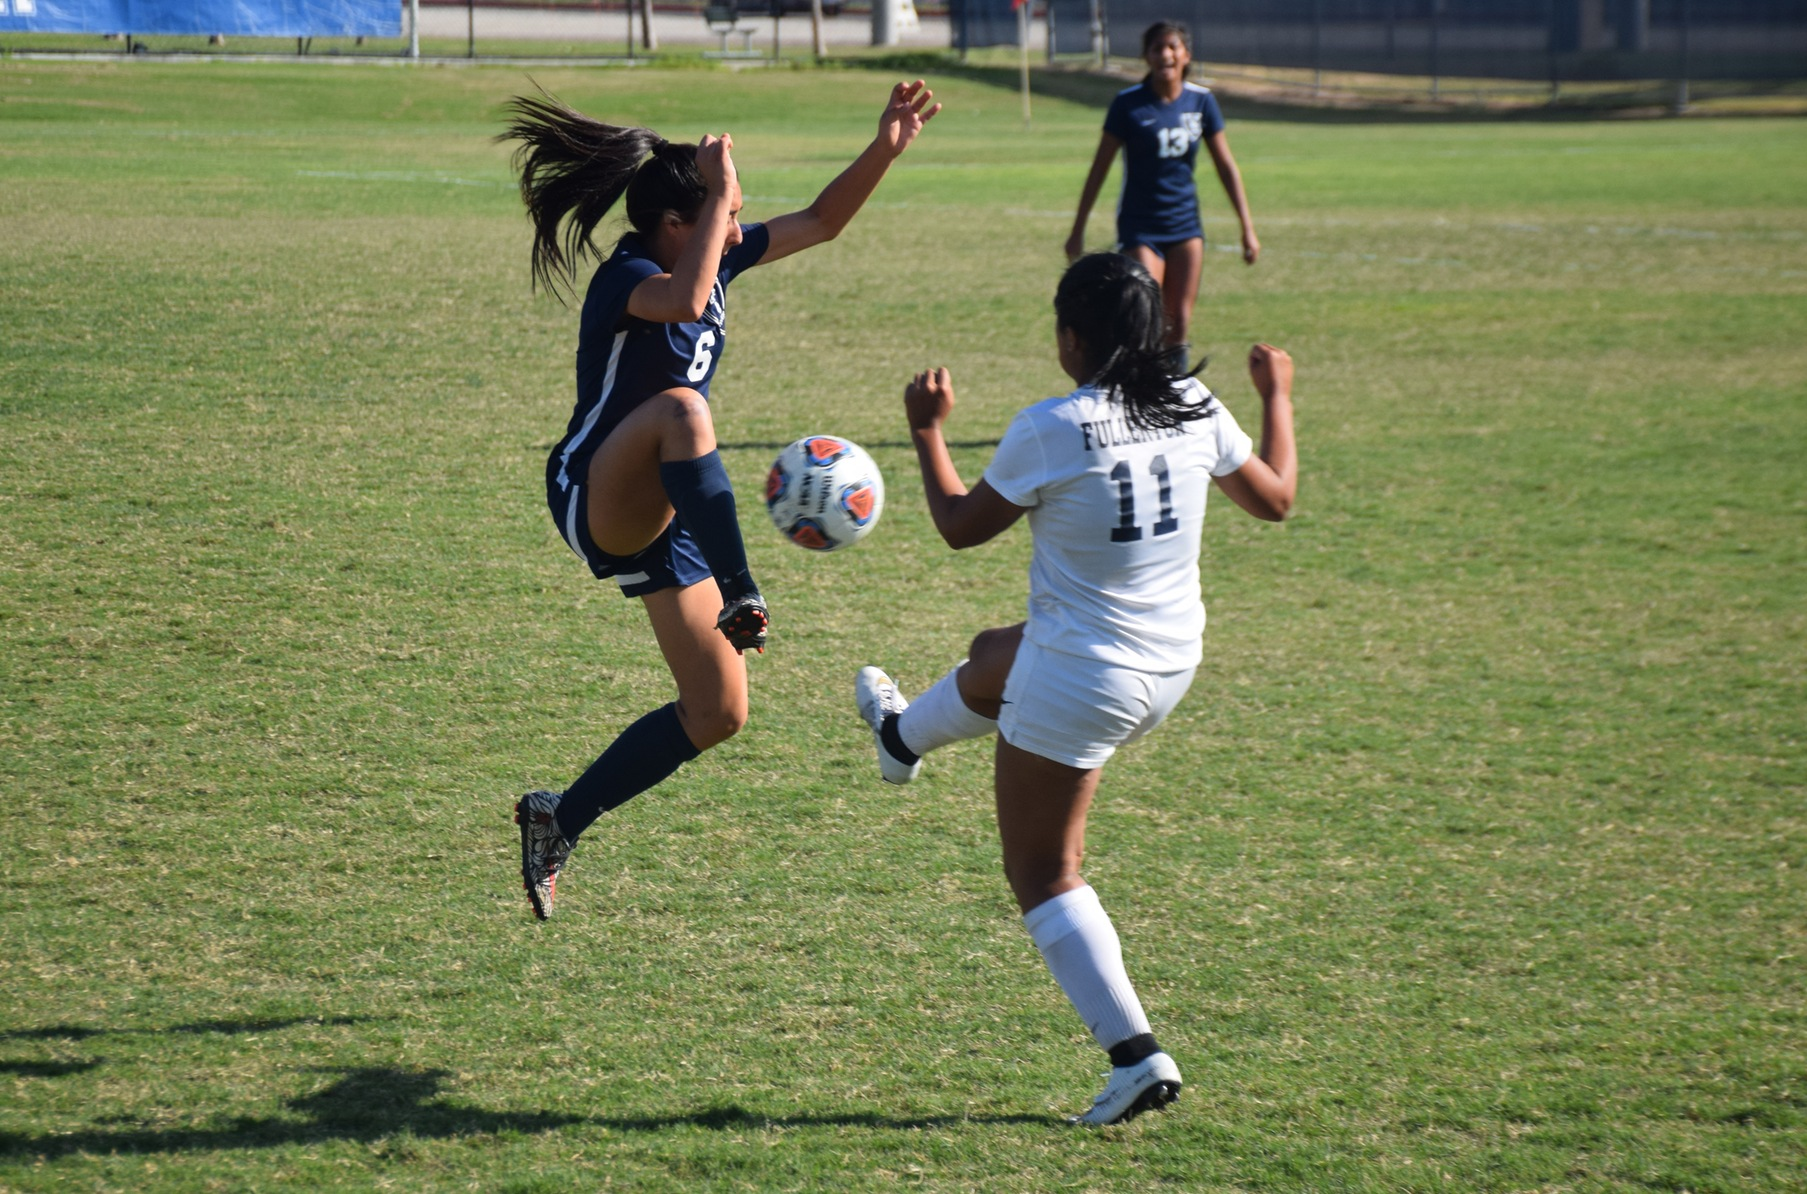 Women's soccer team battles for 2-2 tie at Cypress